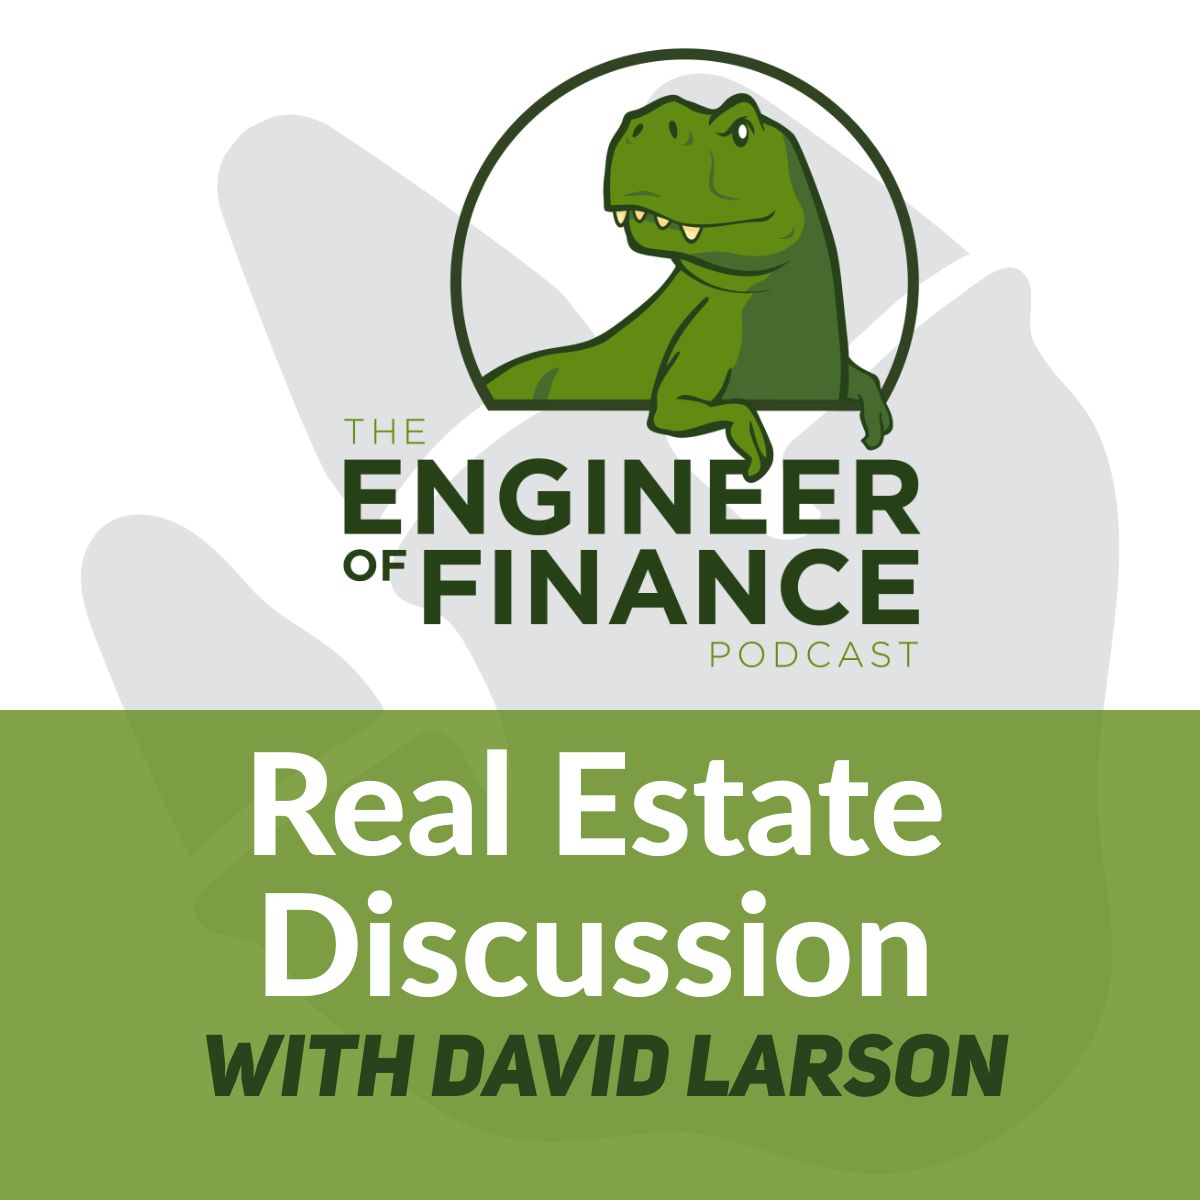 Real Estate Discussion with David Larson – Episode 124